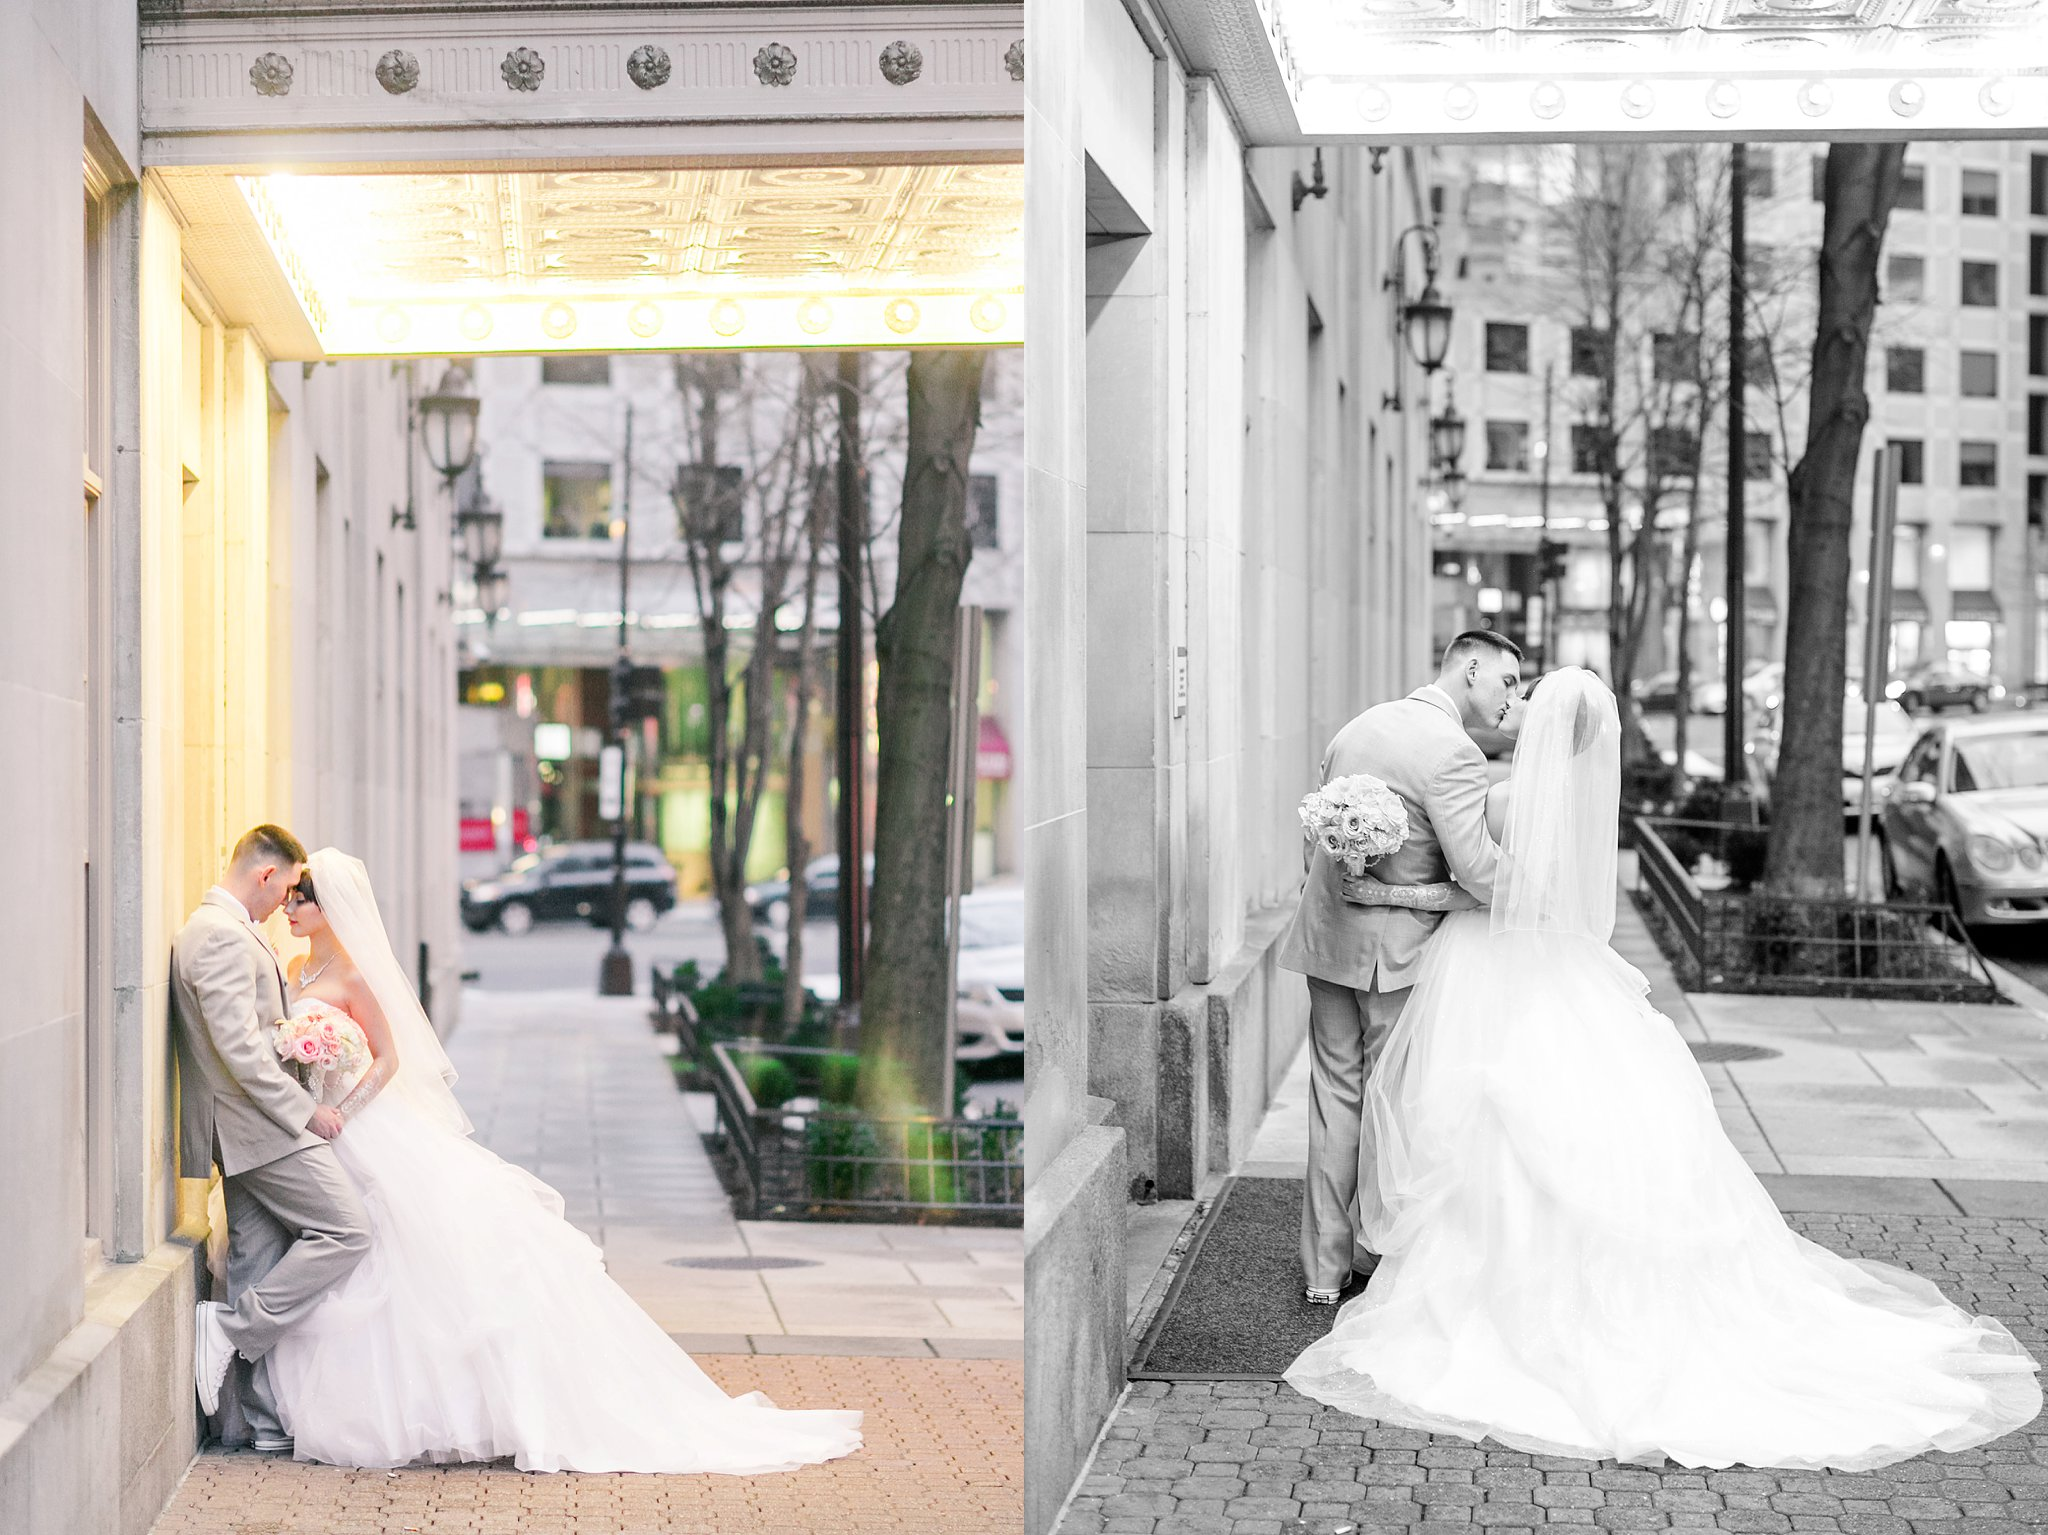 Mayflower Hotel Wedding Photos DC Pink & Gold Winter Wedding Tori & Tyler-156_photo.jpg